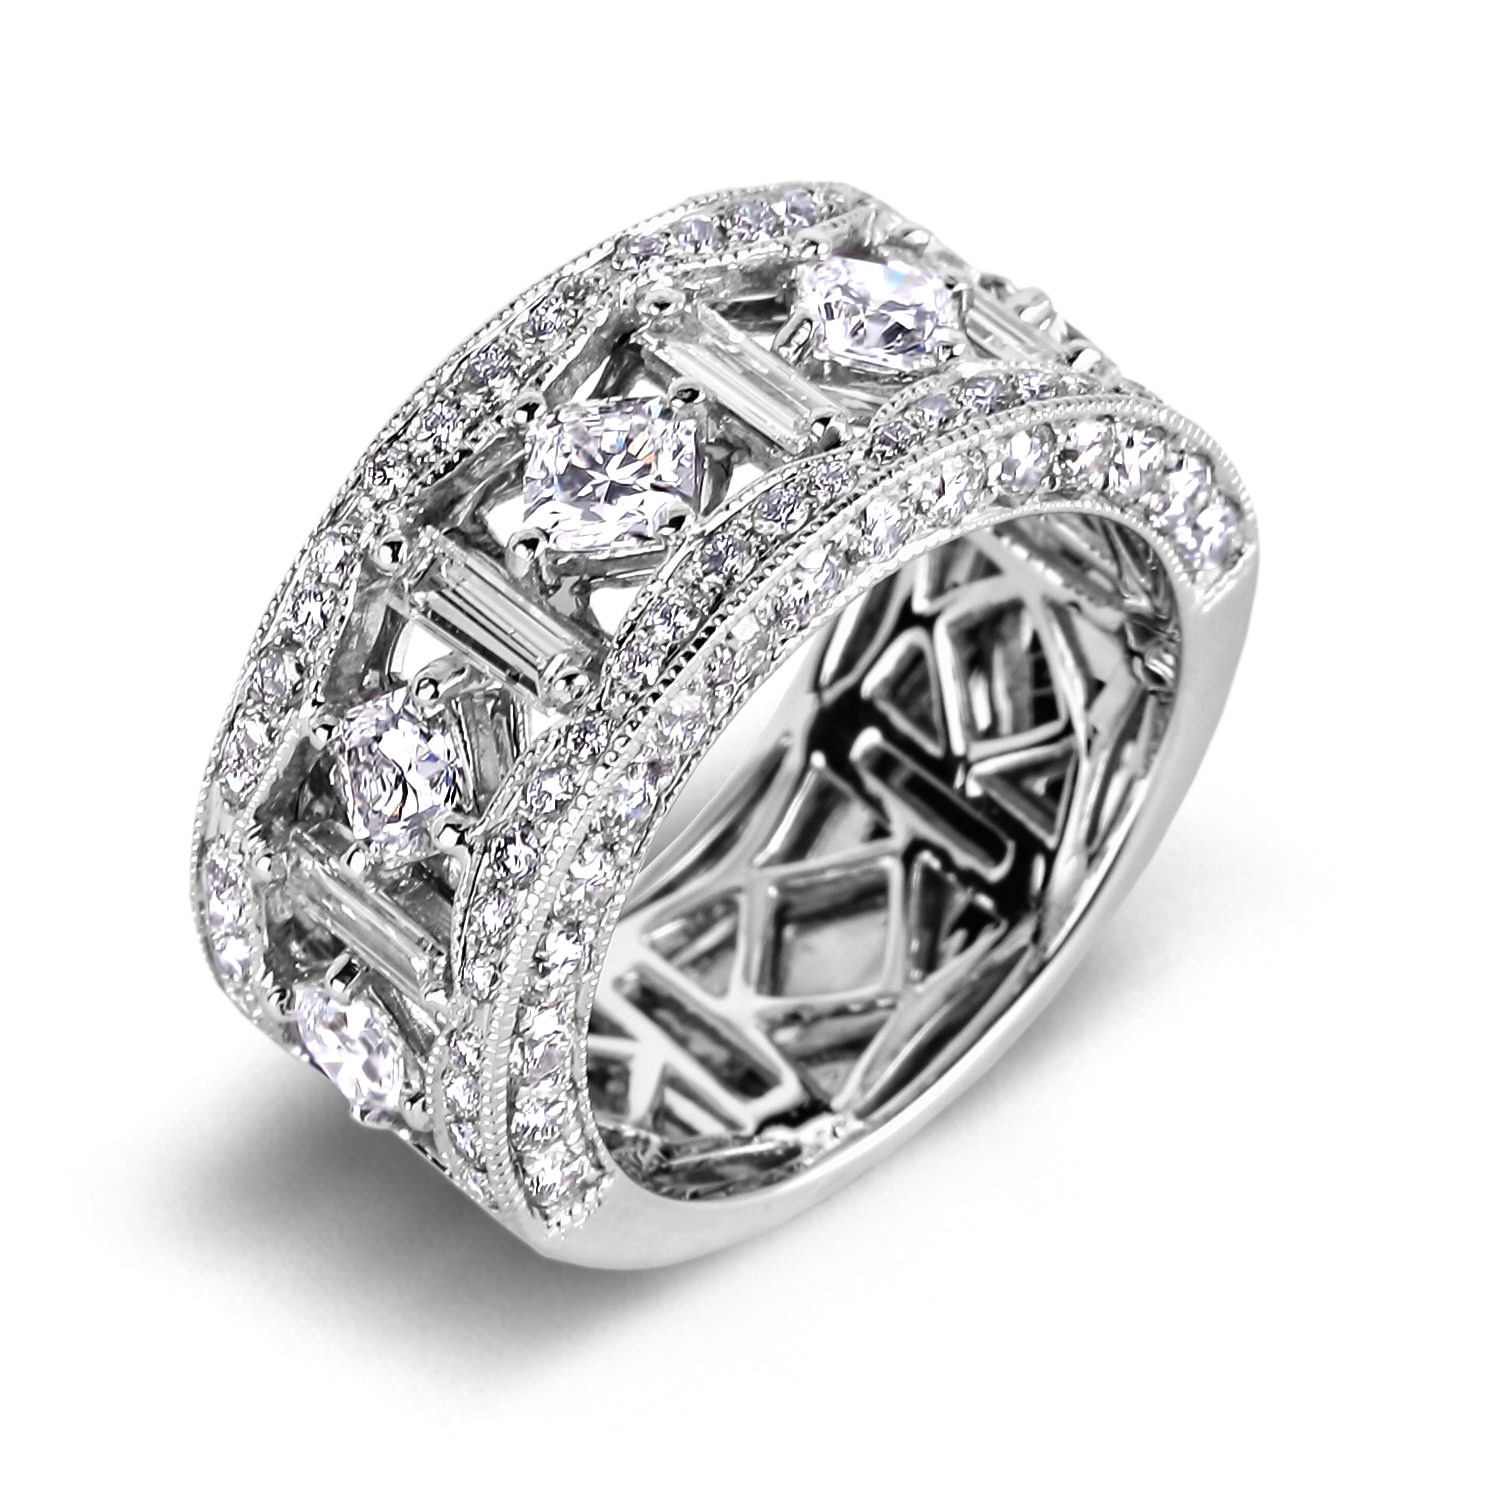 catalogues best diamond of anniversary toronto rings weddings aniversary bands proud wedding carriers